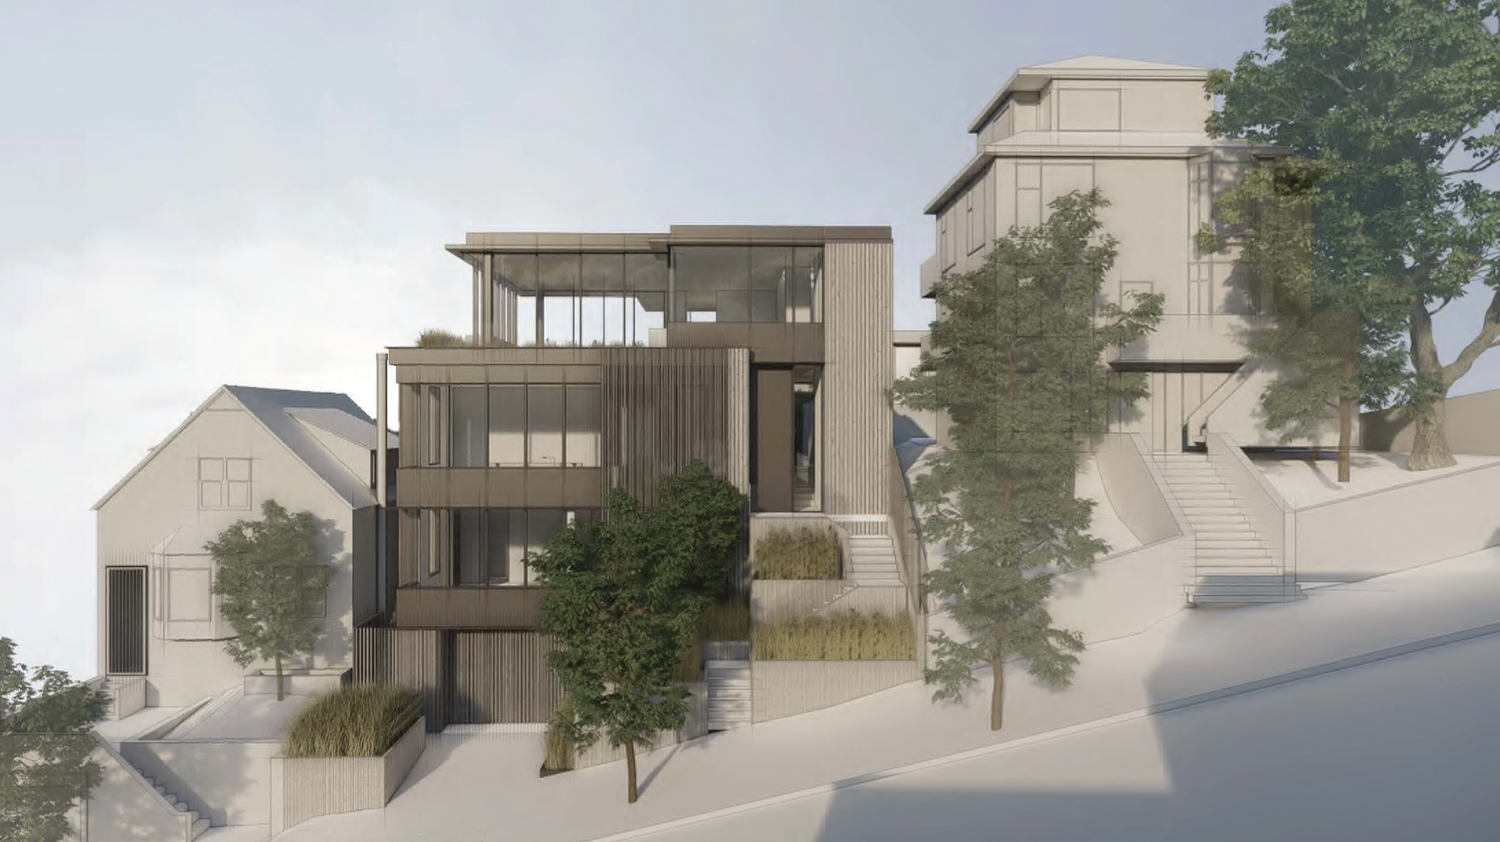 3669 21st Street, rendering by John Maniscalco Architecture